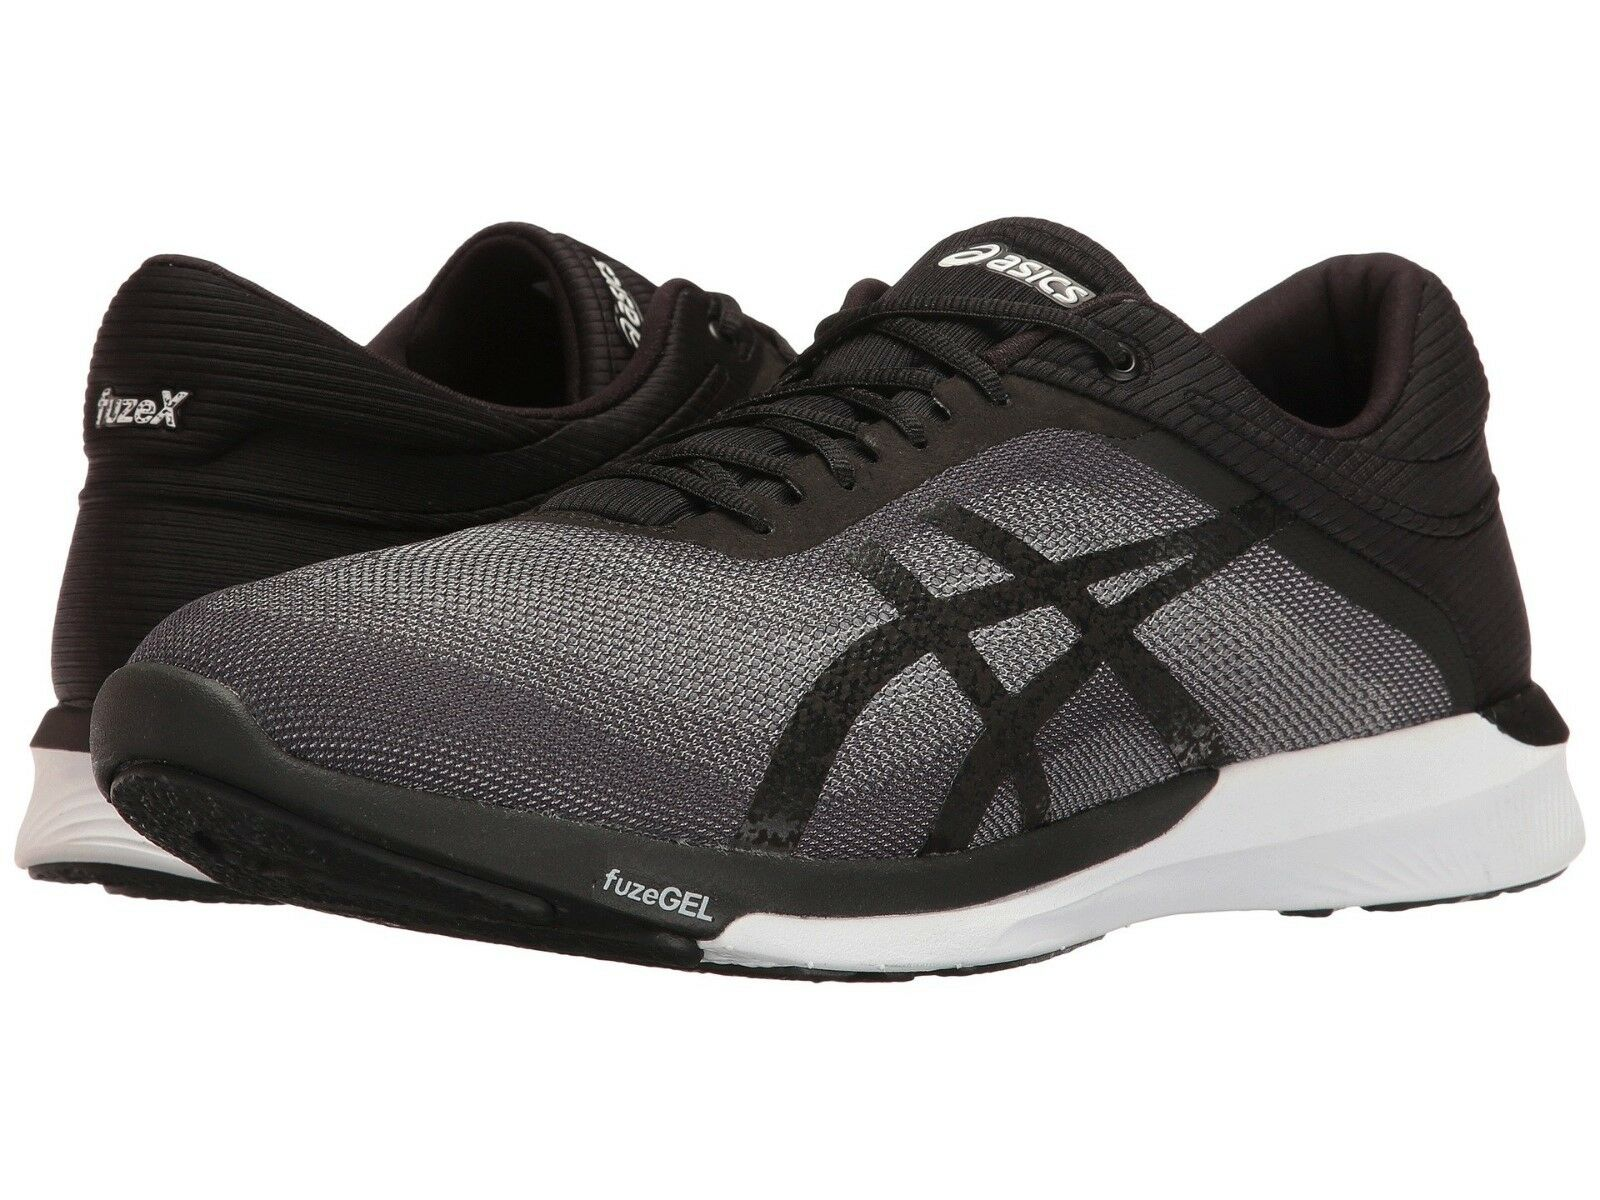 NEW Rush  Herren ASICS fuzeX Rush NEW TRAINING / RUNNING Schuhe - 11.5 / EURO 46 - AUTHENTIC 51862d